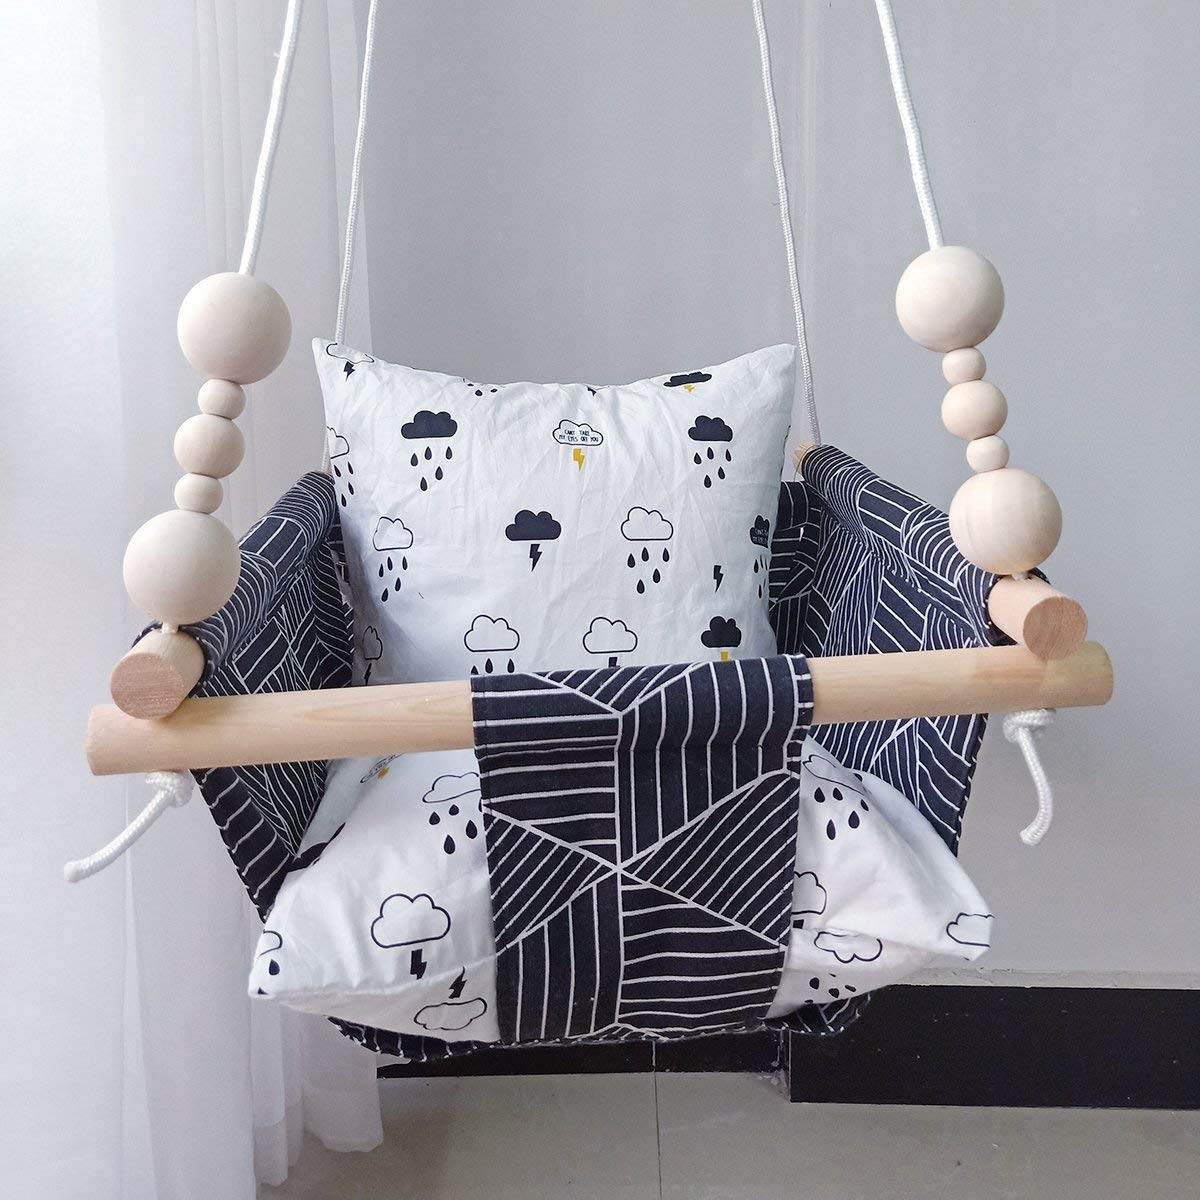 Tree /& Deer Indoor Outdoor Baby Hammock Chair Portable Hanging Seat Hammock for Toddlers HB.YE Handmade Safety Canvas Baby Swing Chair